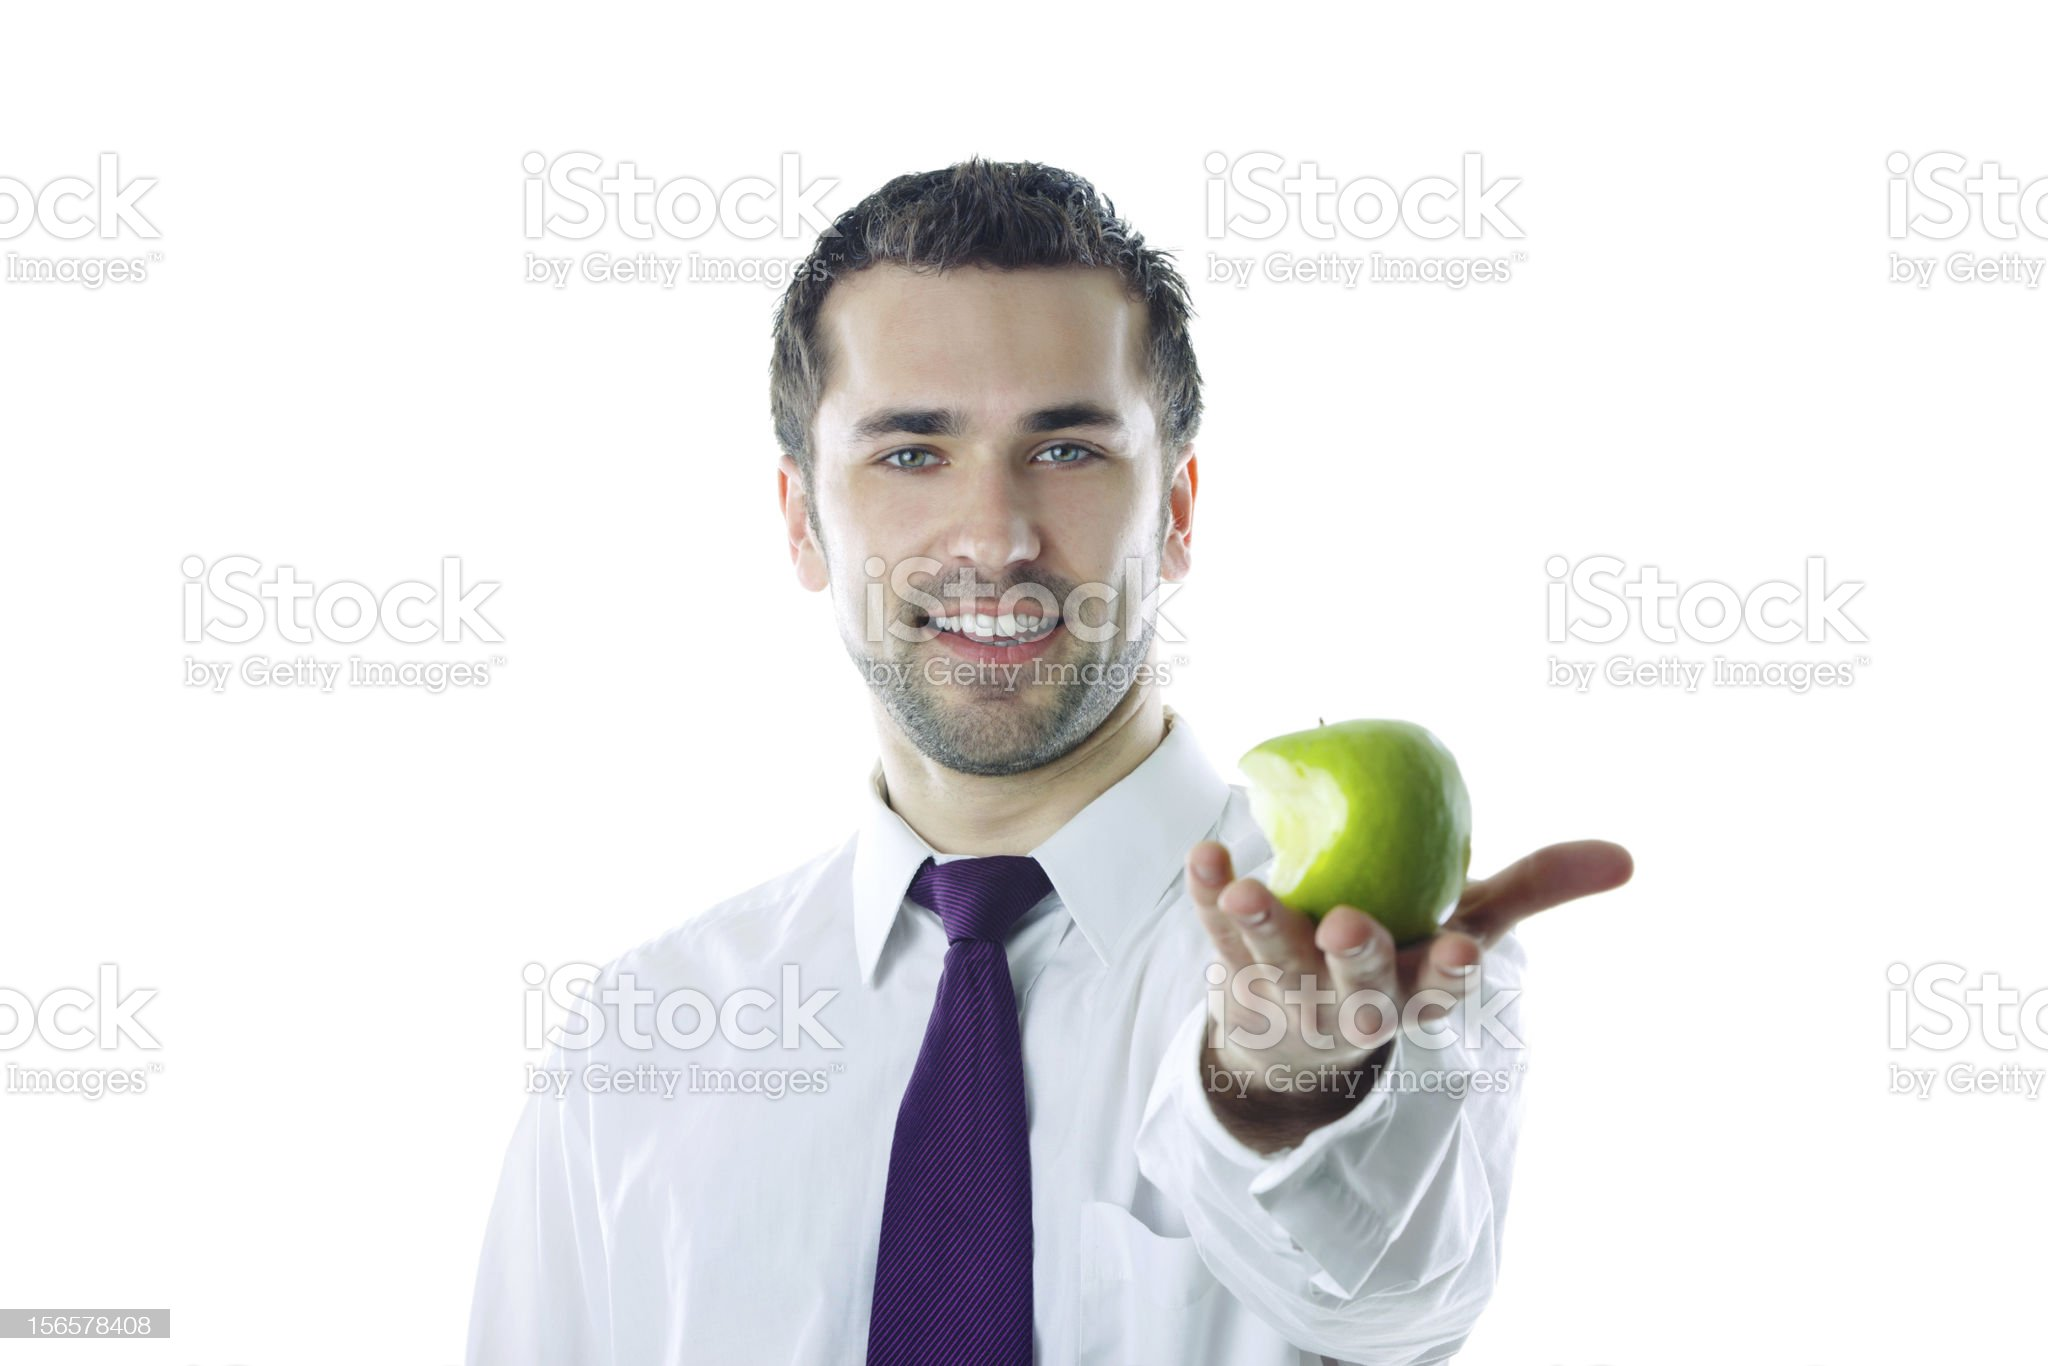 Close-up of  young smiling businessman holding bitten apple royalty-free stock photo